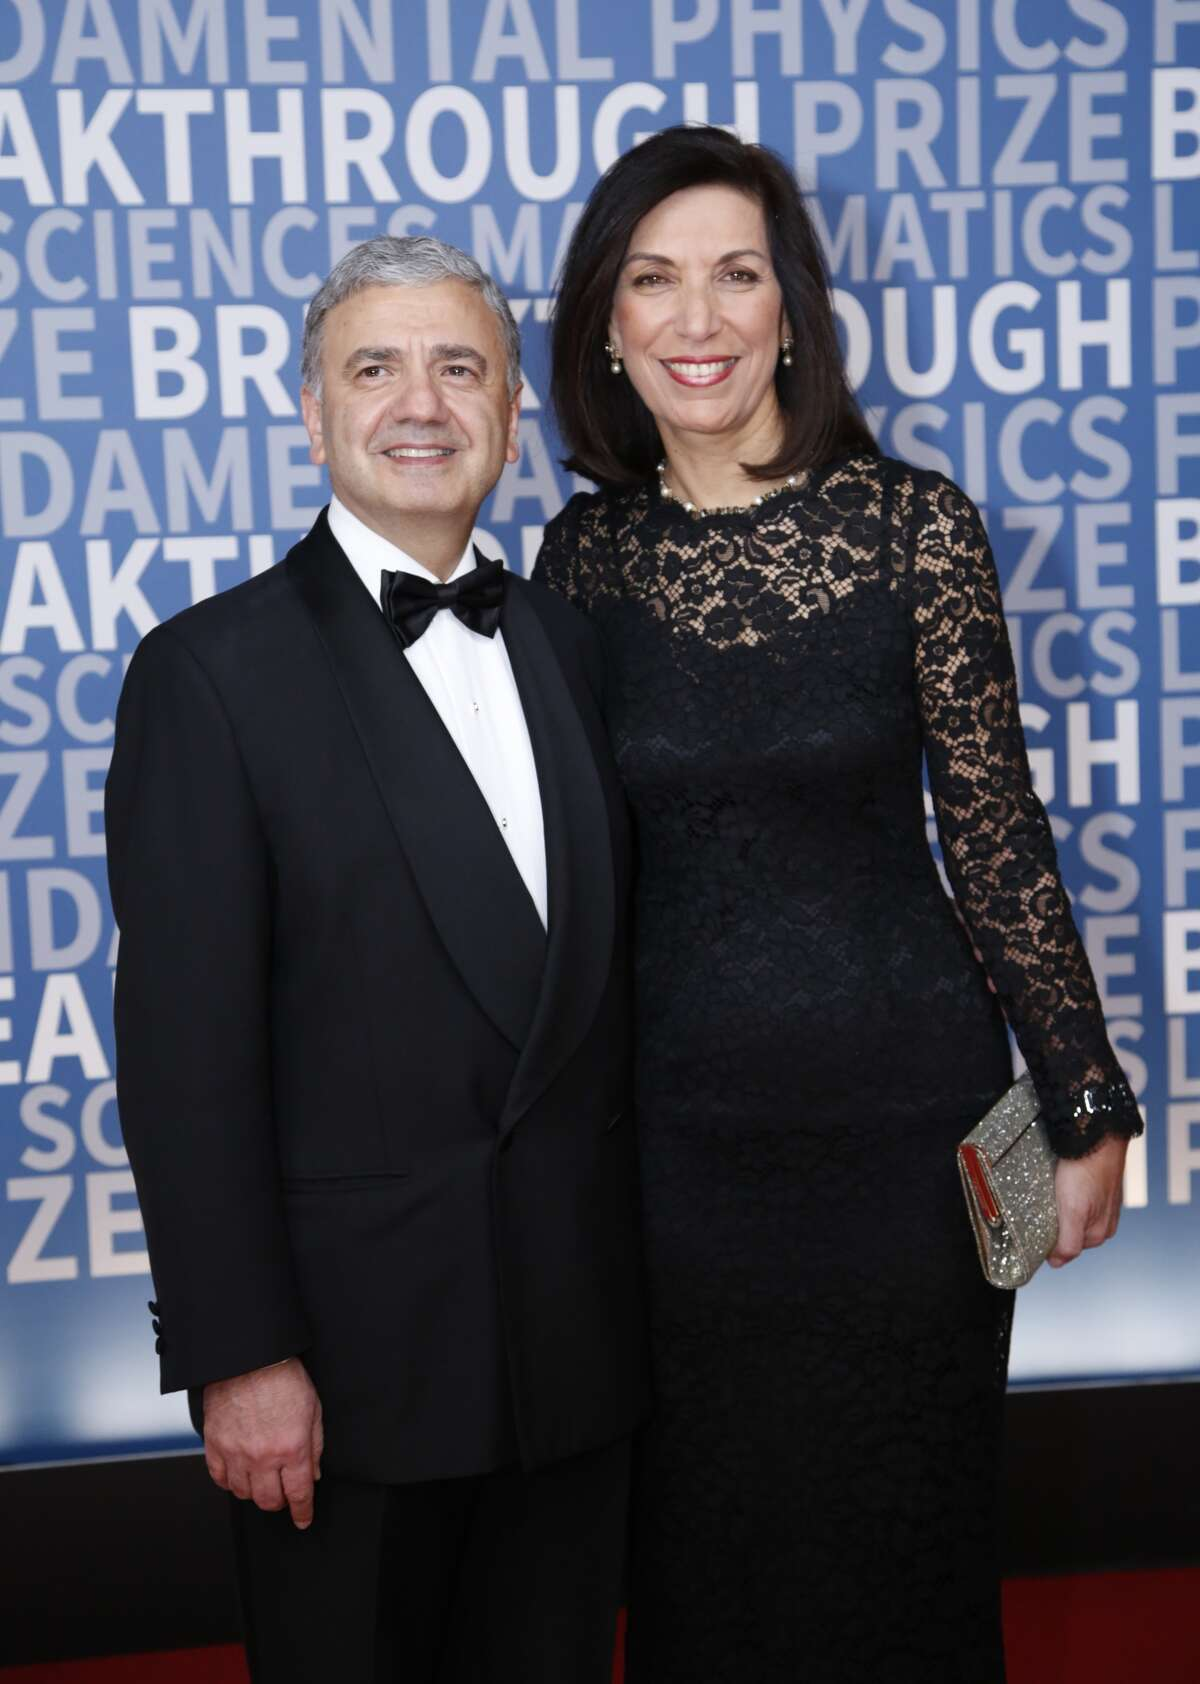 Breakthrough Prize in Life Sciences Laureate Huda Zoghbi (right) and William Zoghbi (left) attend the 2017 Breakthrough Prize at NASA Ames Research Center on December 4, 2016 in Mountain View, California.